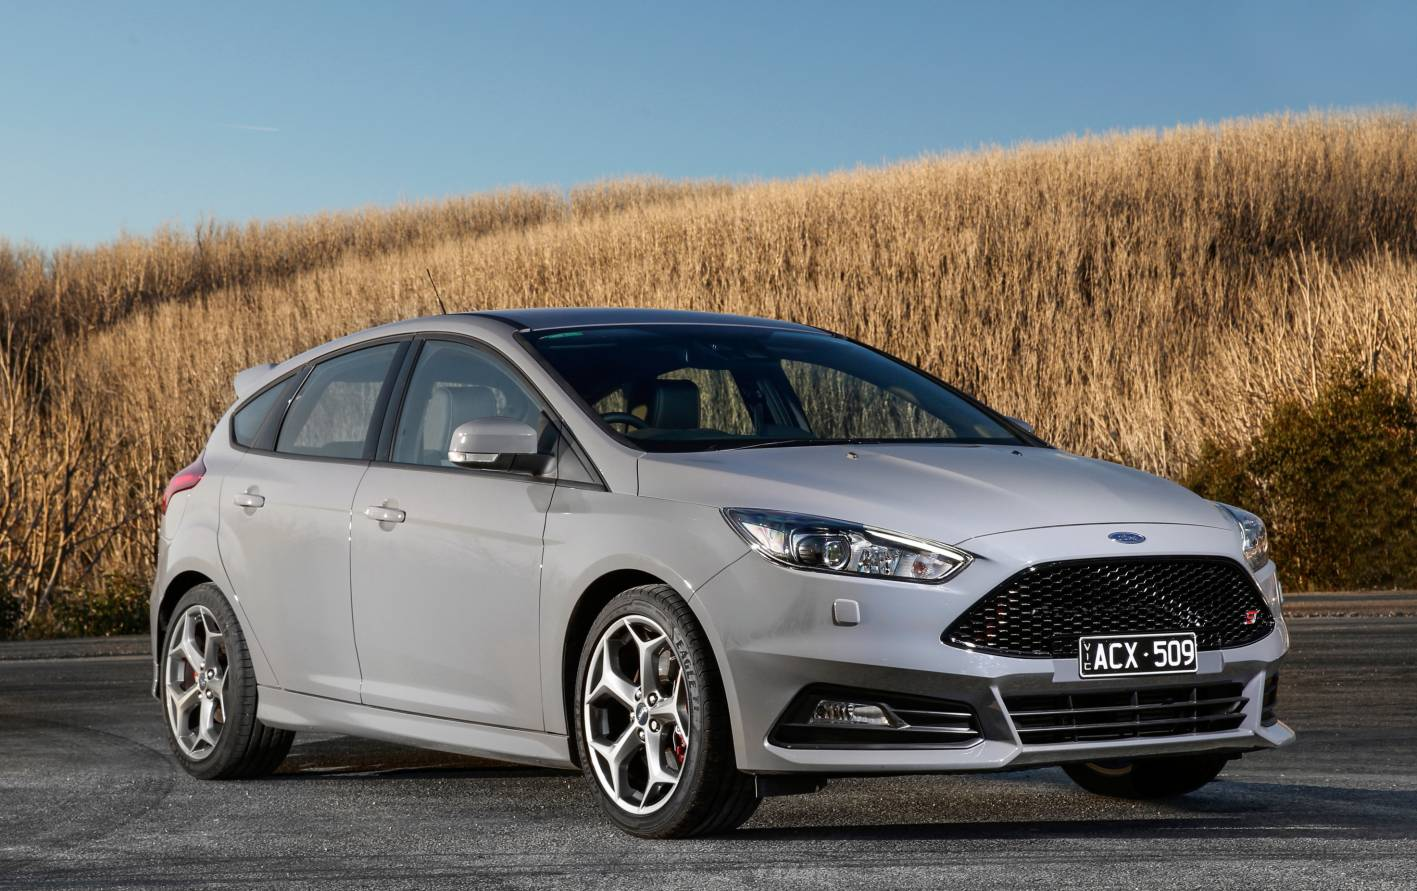 2015 ford focus st detailed in fresh new photos. Black Bedroom Furniture Sets. Home Design Ideas